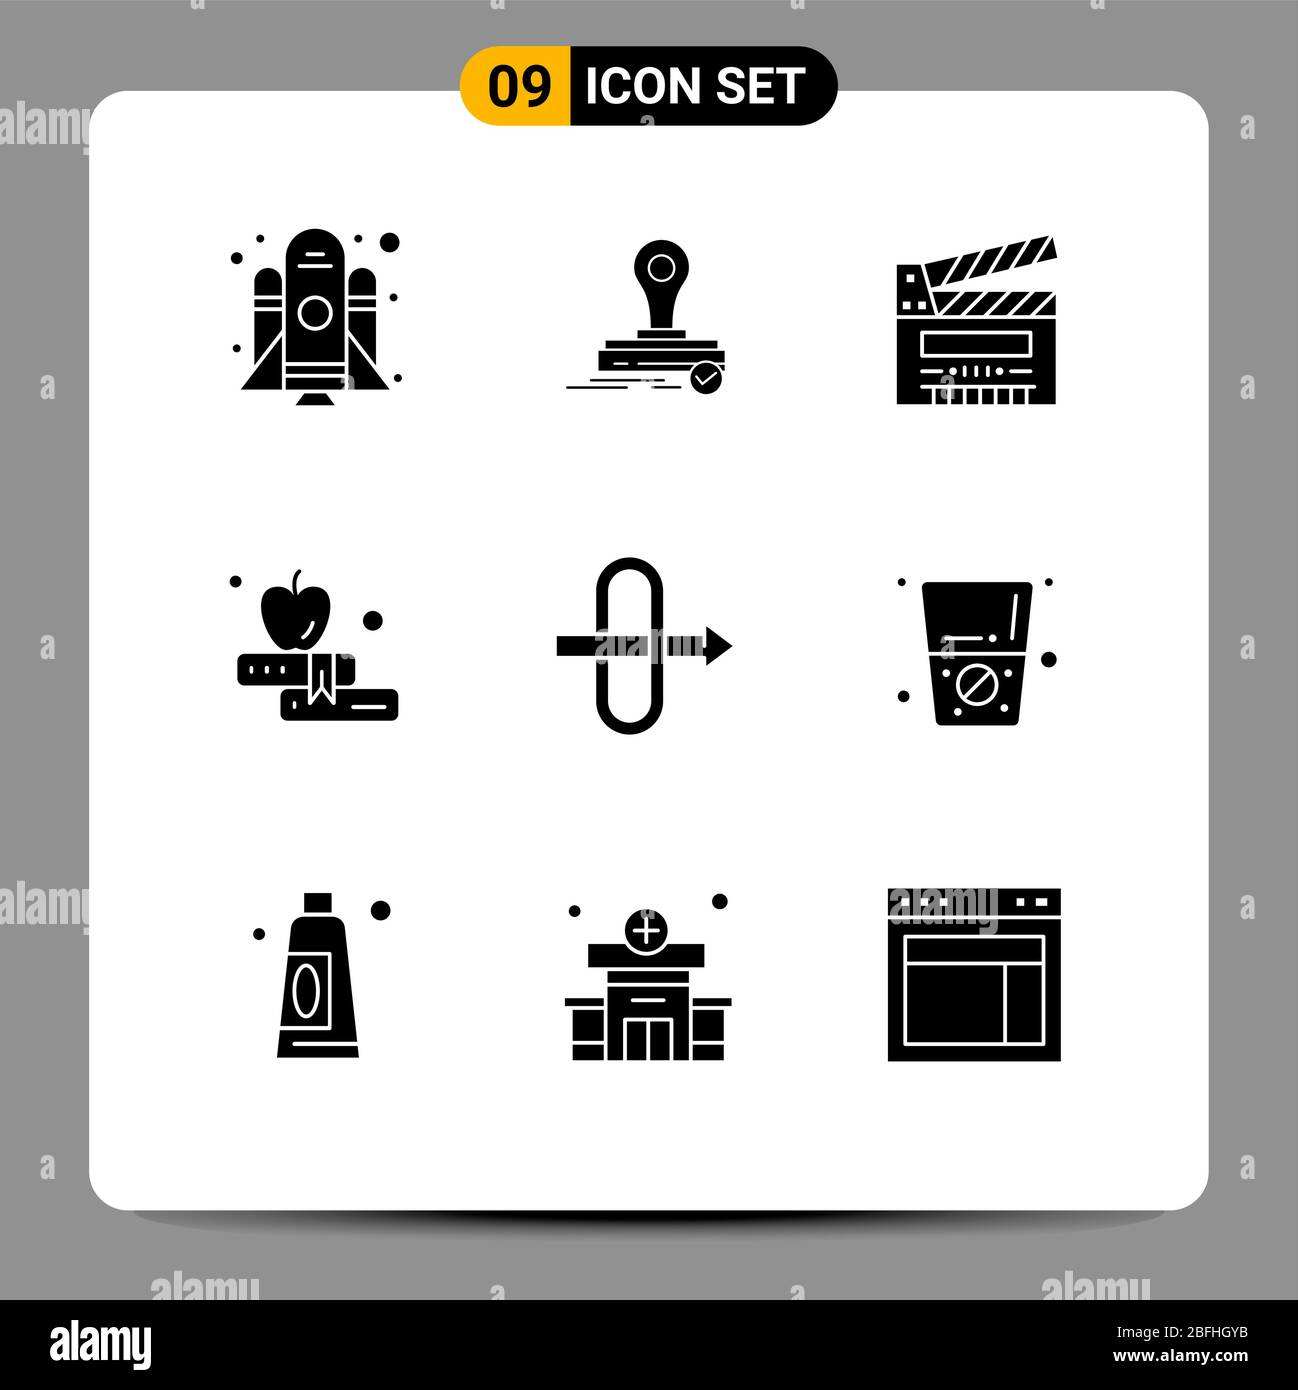 User Interface Pack Of 9 Basic Solid Glyphs Of Diet Gateway Cut Education Apple Editable Vector Design Elements Stock Vector Image Art Alamy